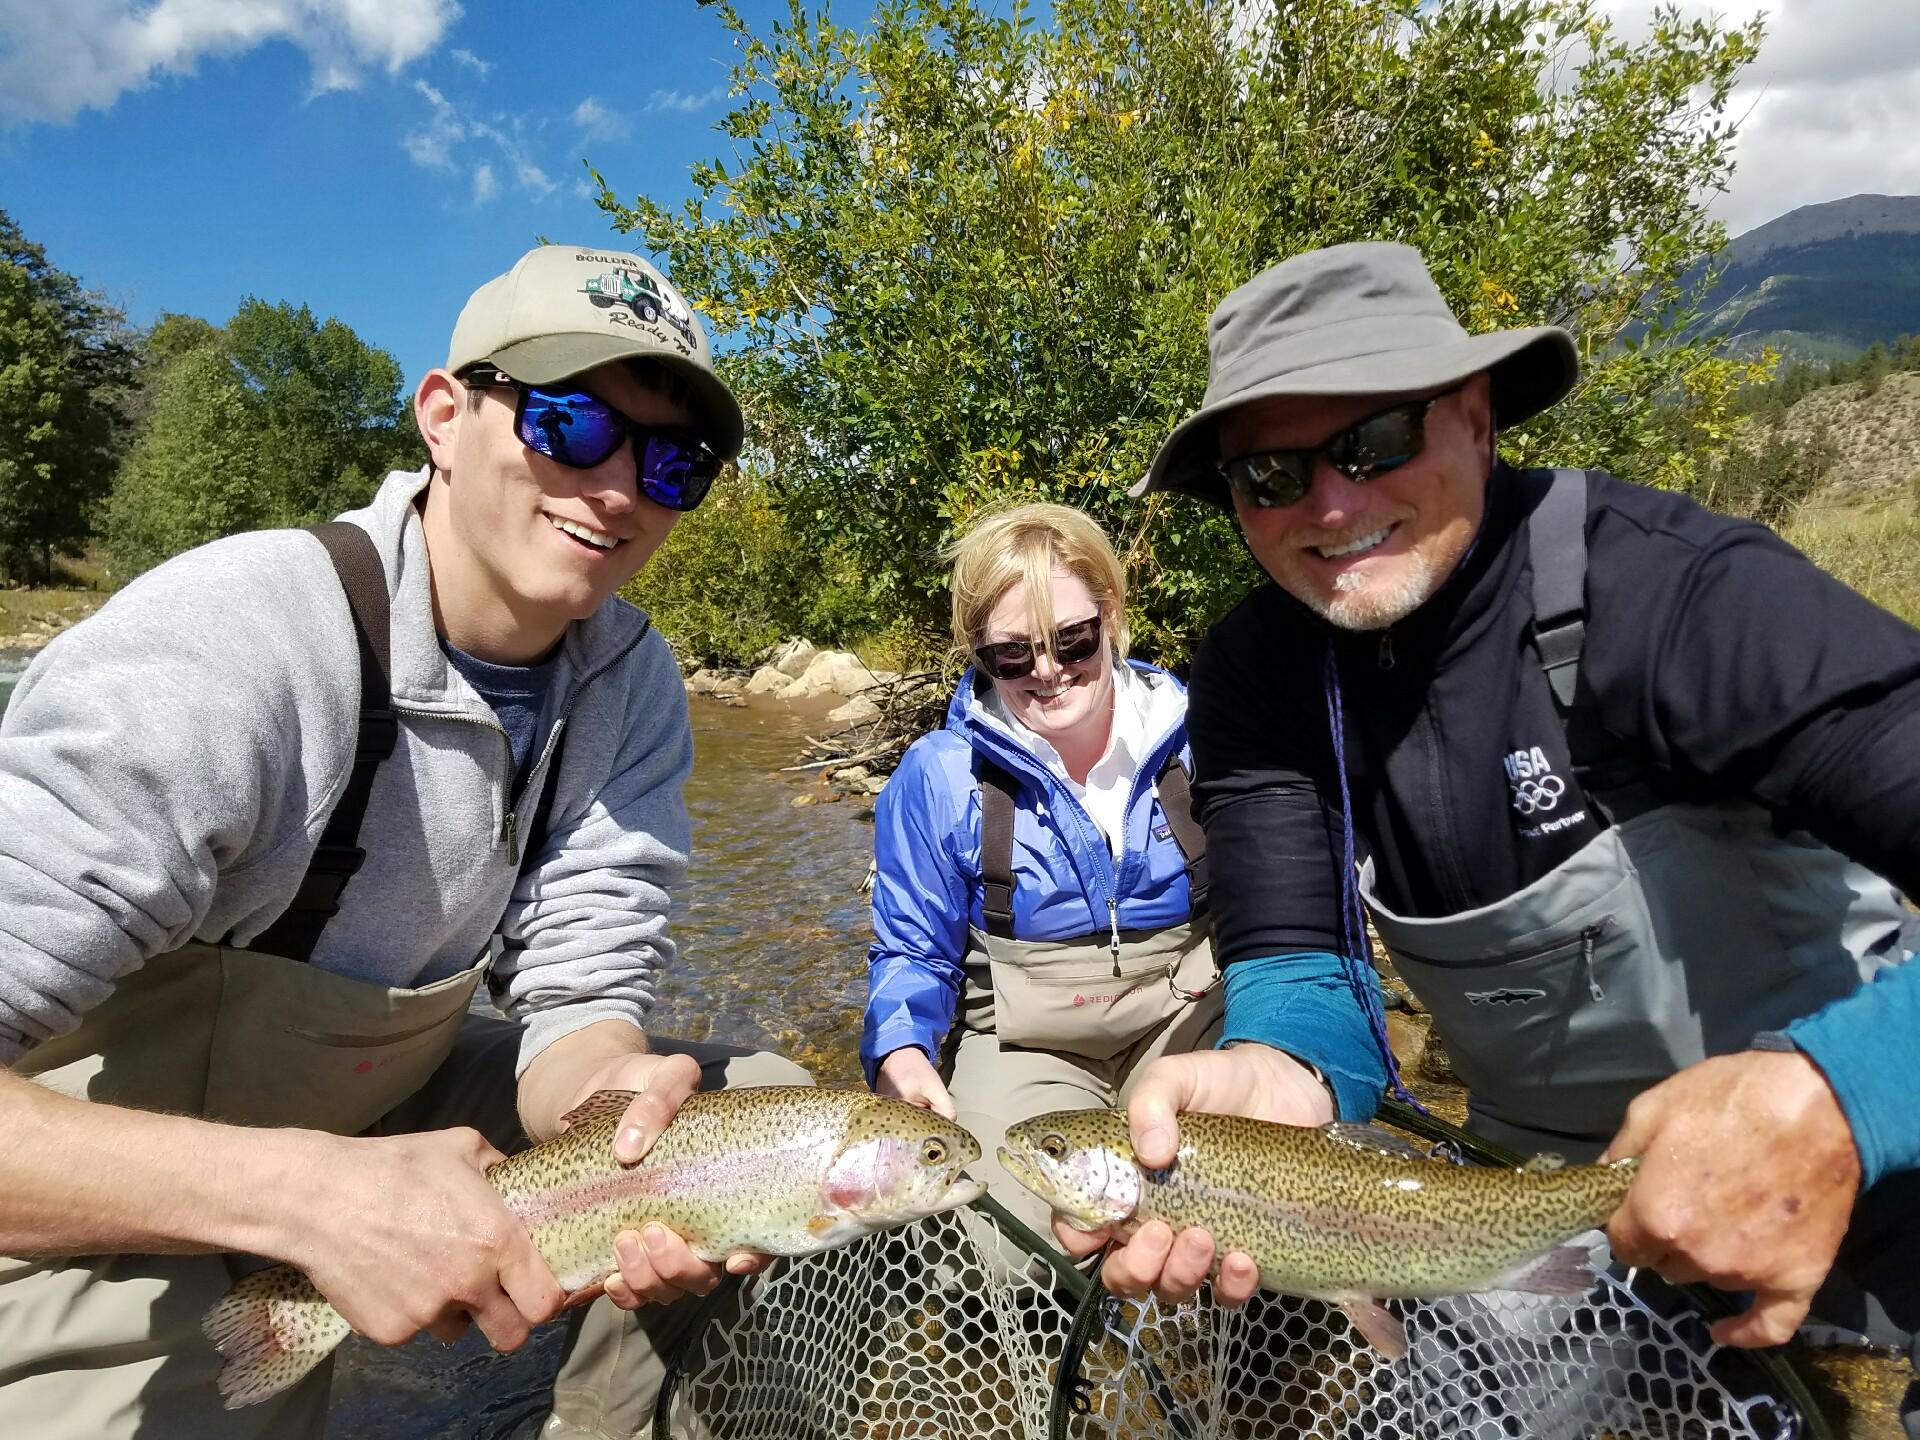 Fly fishing photo gallery for Fishing near denver